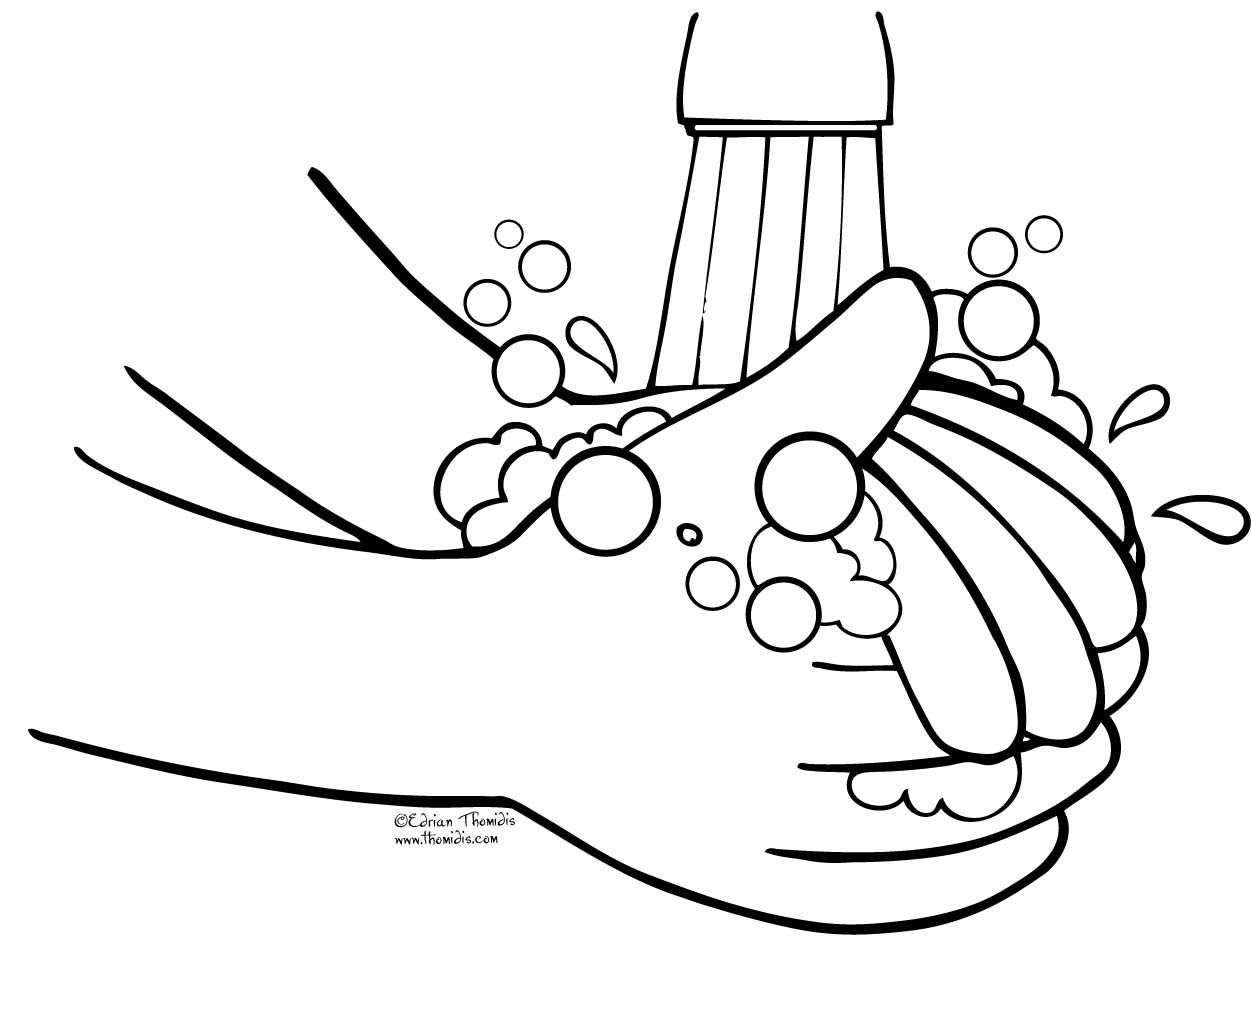 Washing Hands Coloring Pages 511